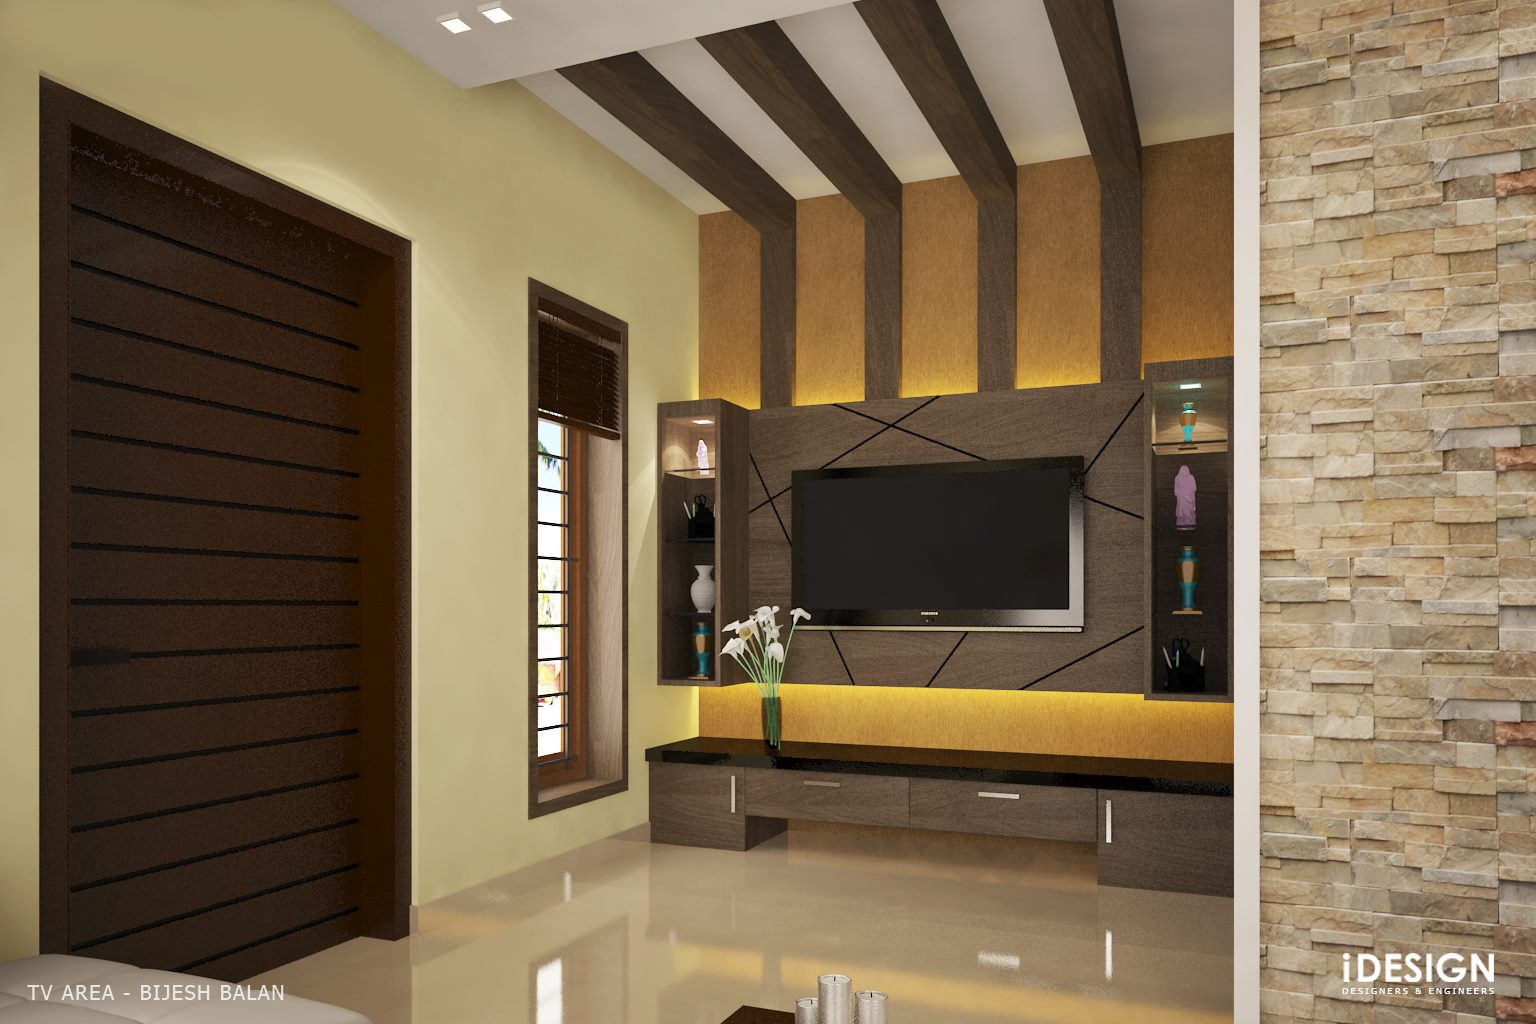 Idesign Calicut Tv Area Design